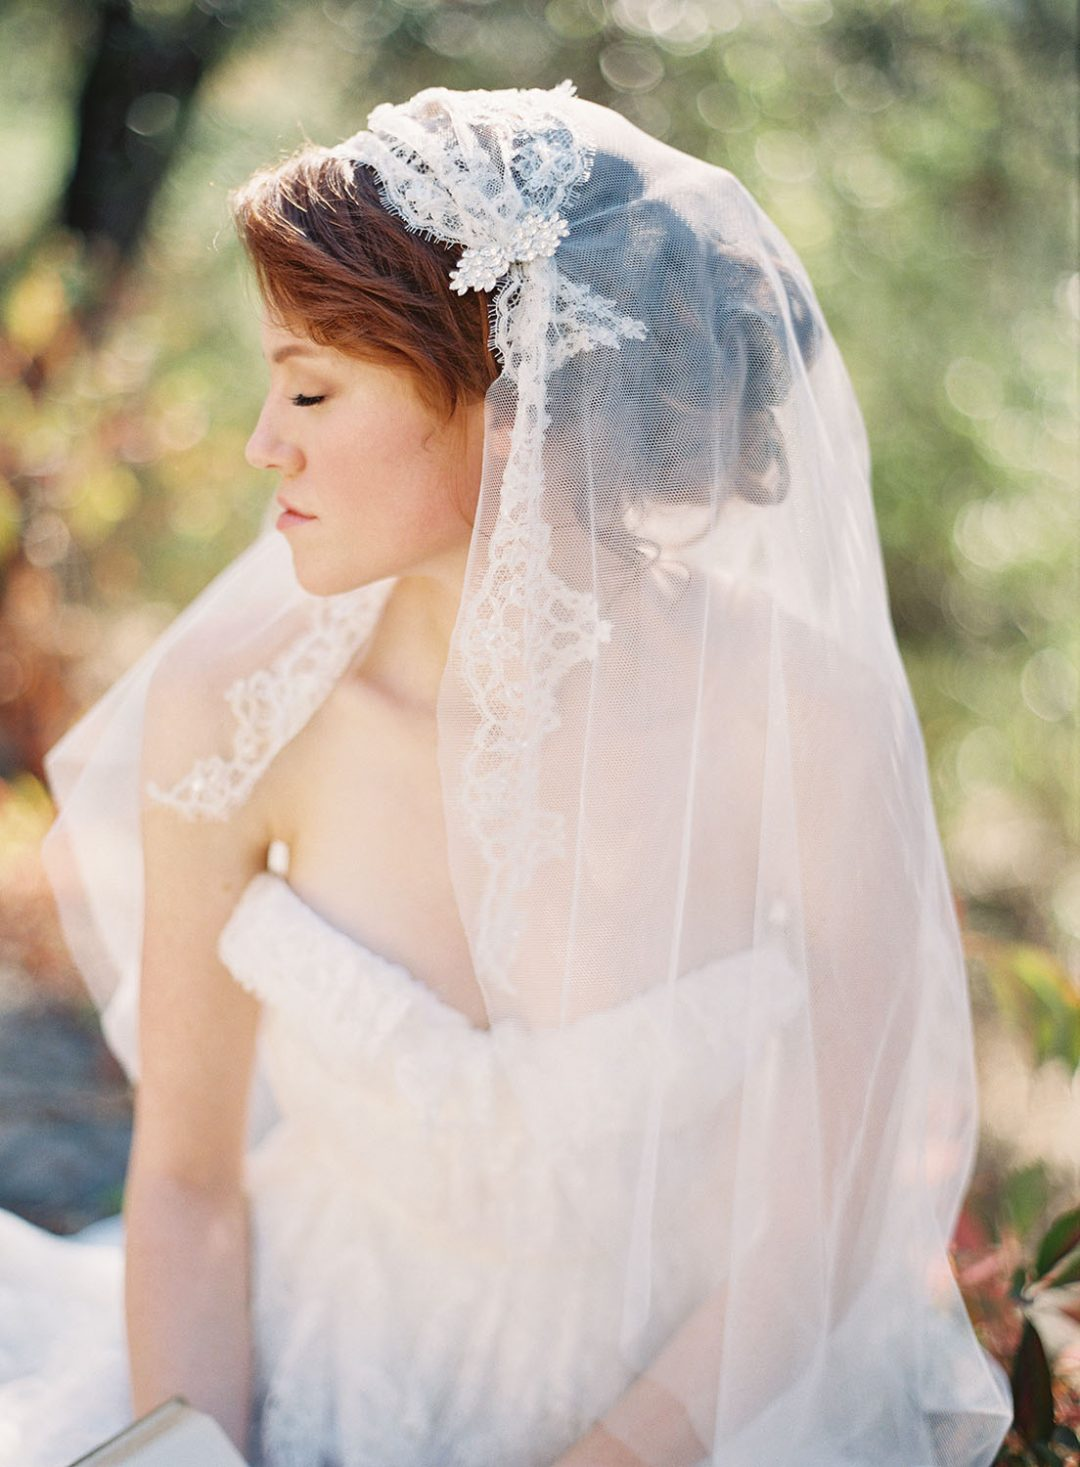 Juliet Cap Bridal Veil, Ivory Lace Juliet Cap Wedding Veil by ww